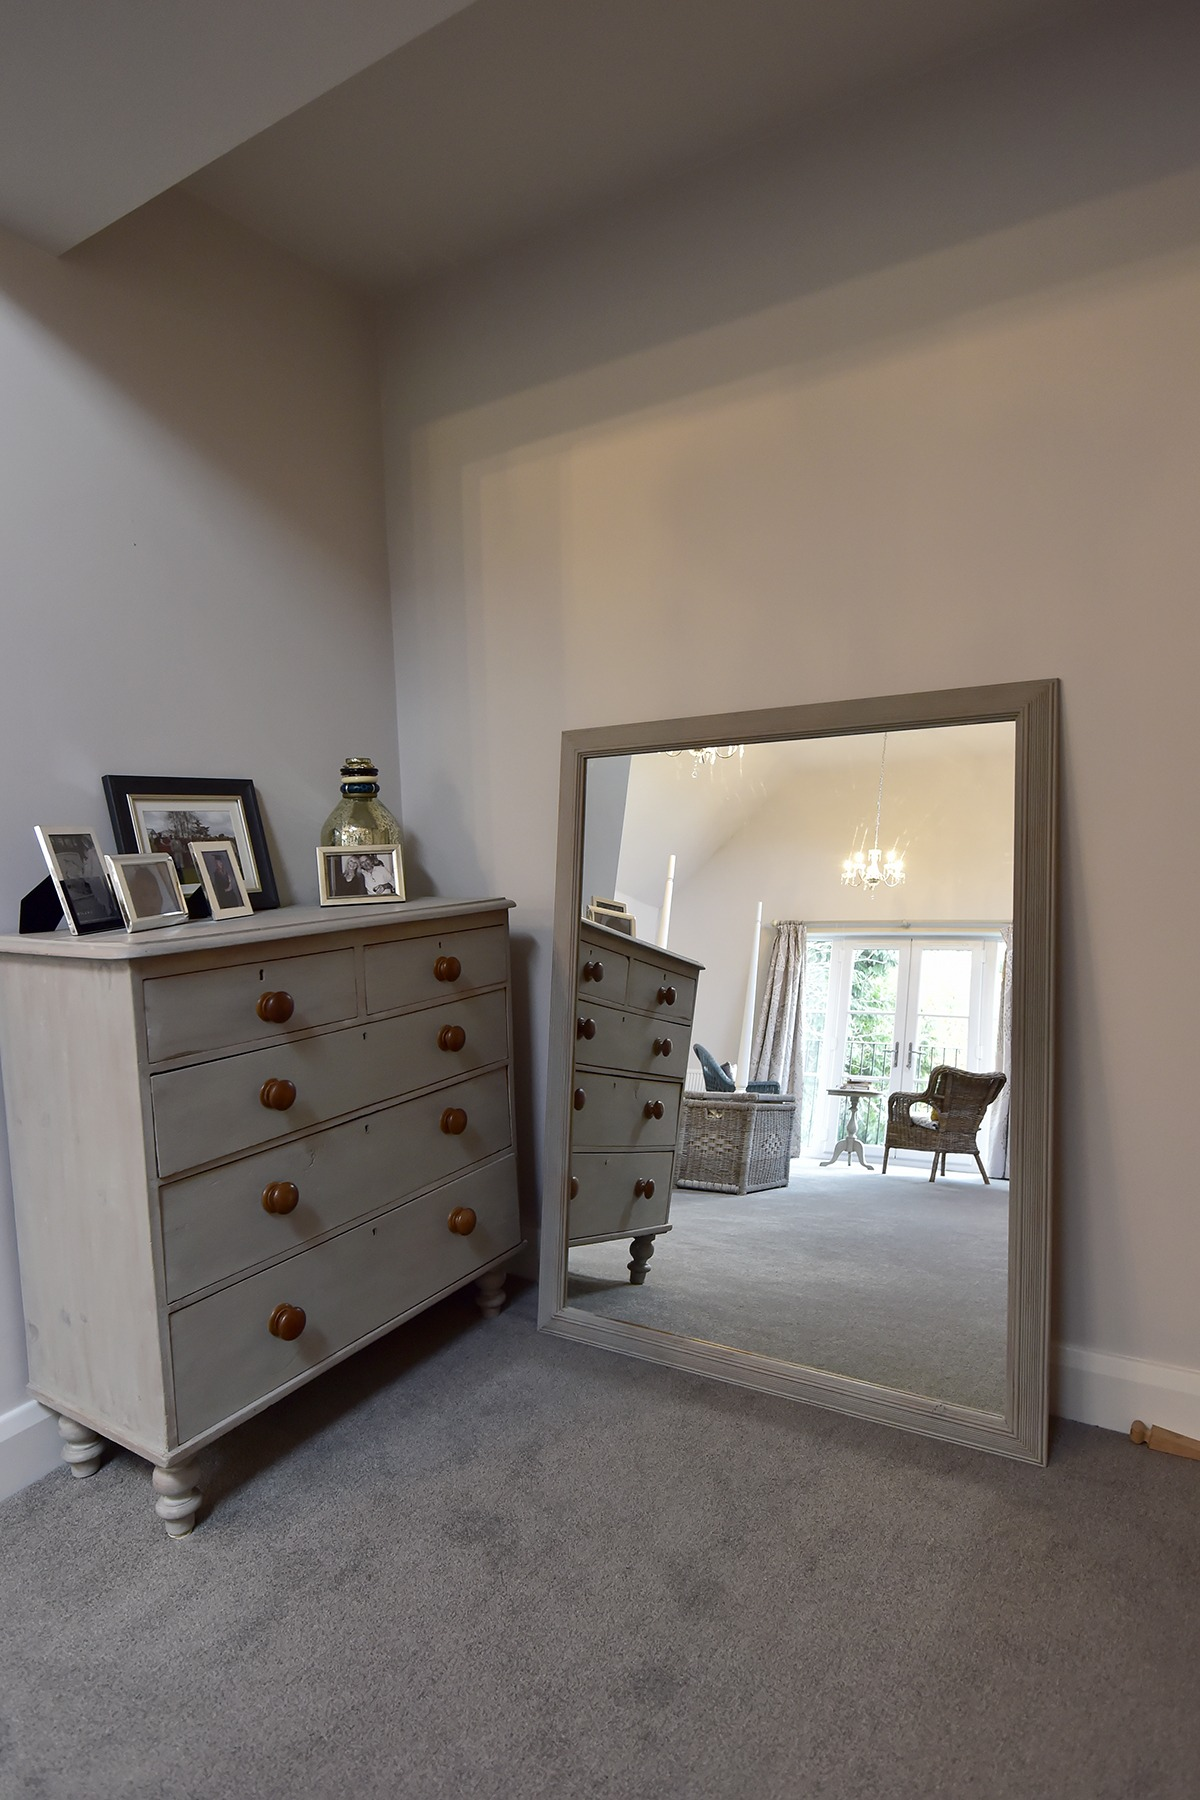 Guest Bedroom Interior Design by Sarah Maidment, Berkhamsted, St. Albans, Hertfordshire